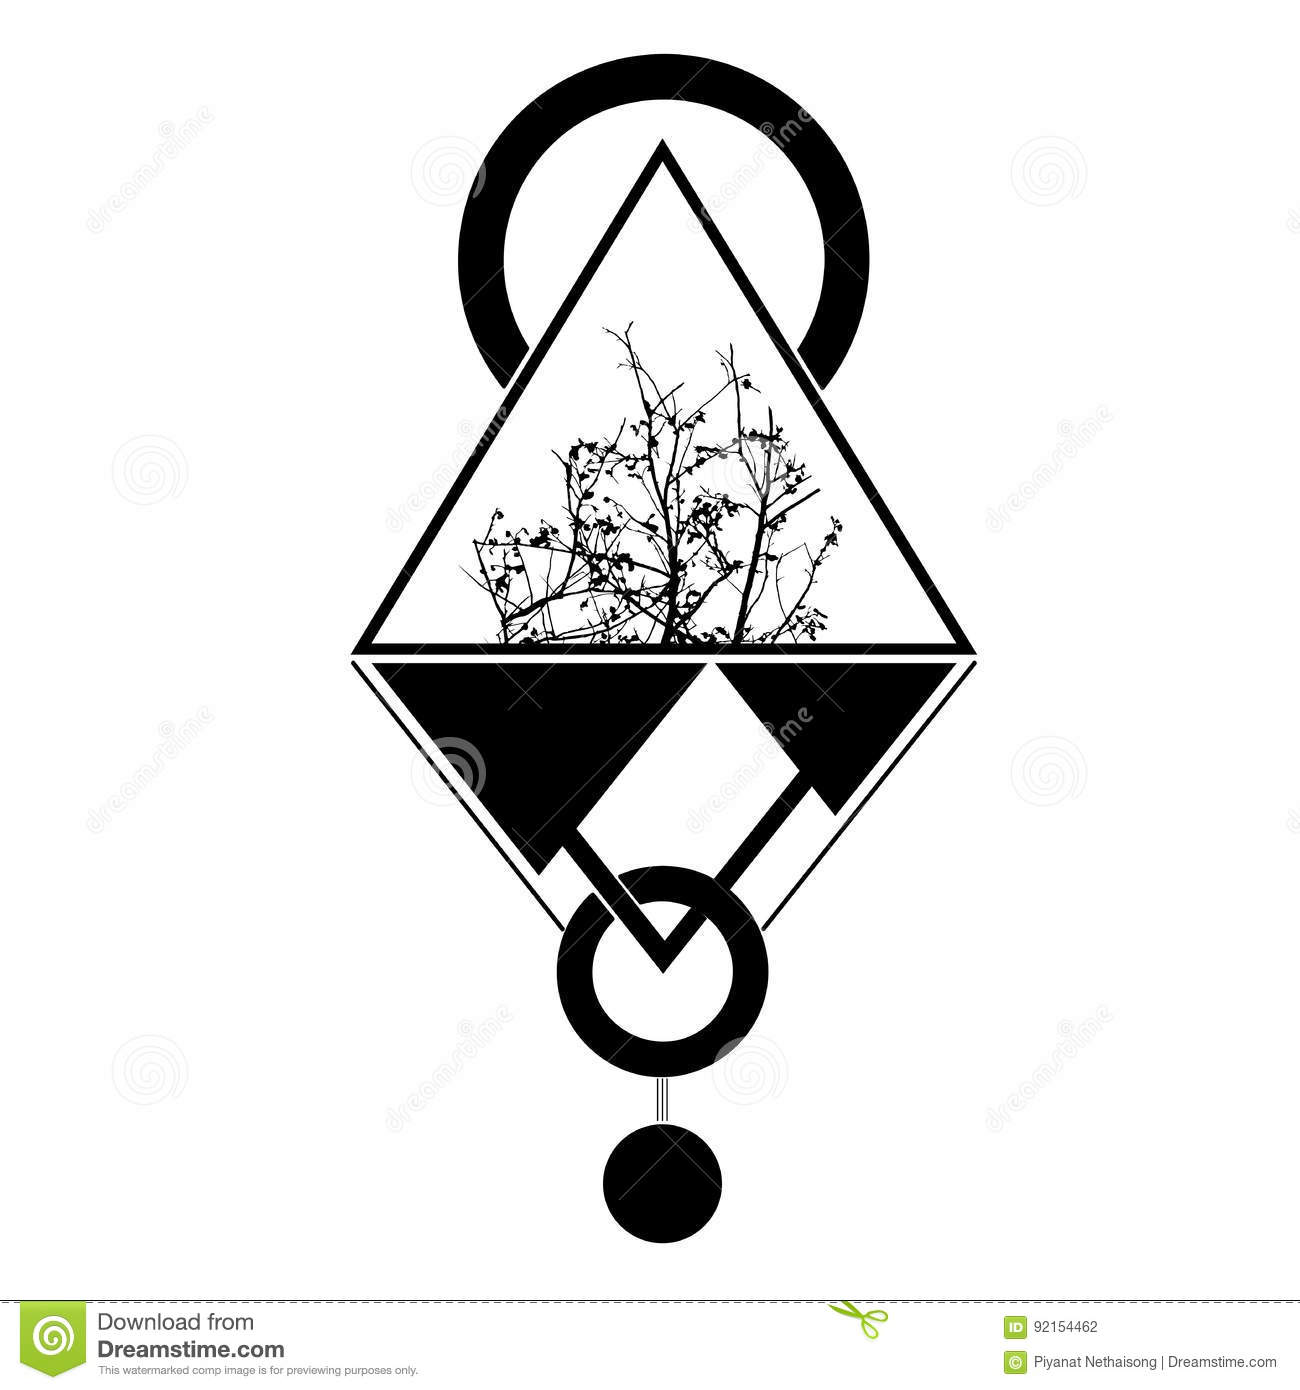 Tattoo Triangle Geomatic Illustration Stock Vector Illustration